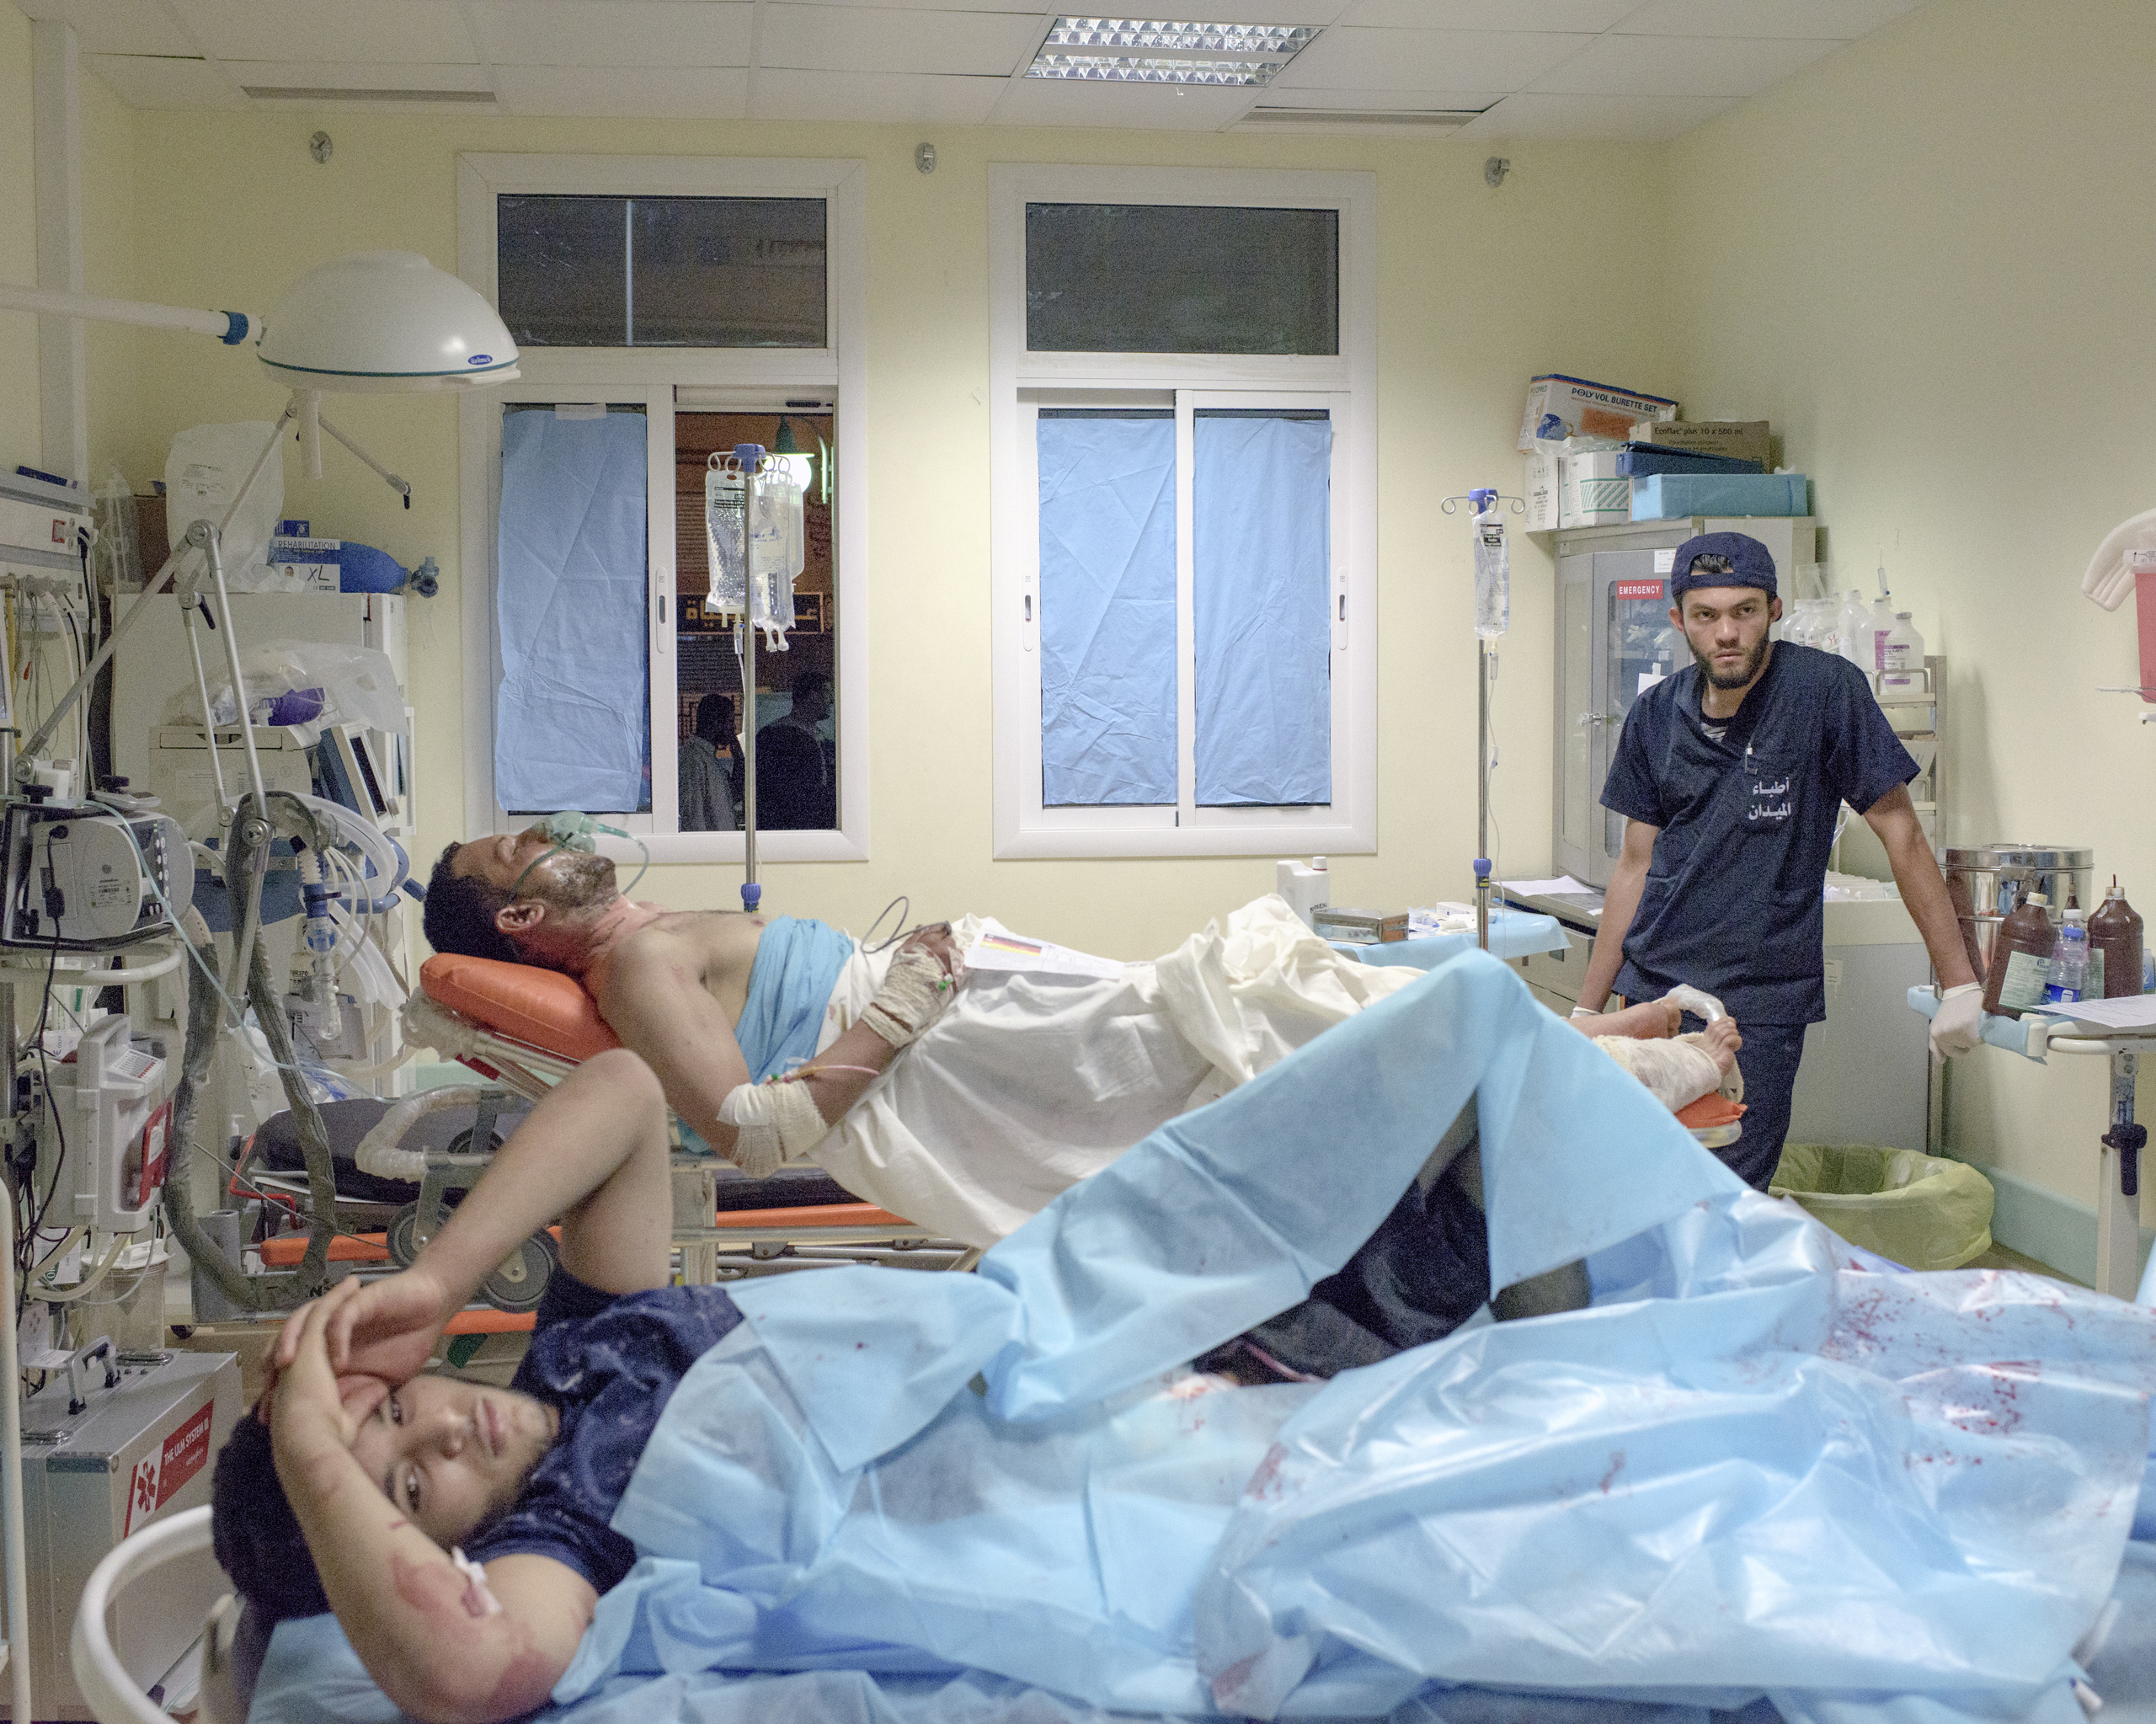 Two Libyan fighters who were wounded on the frontline against ISIS were taken to the emergency room of Misratah Central Hospital, Misratah, July 2016.